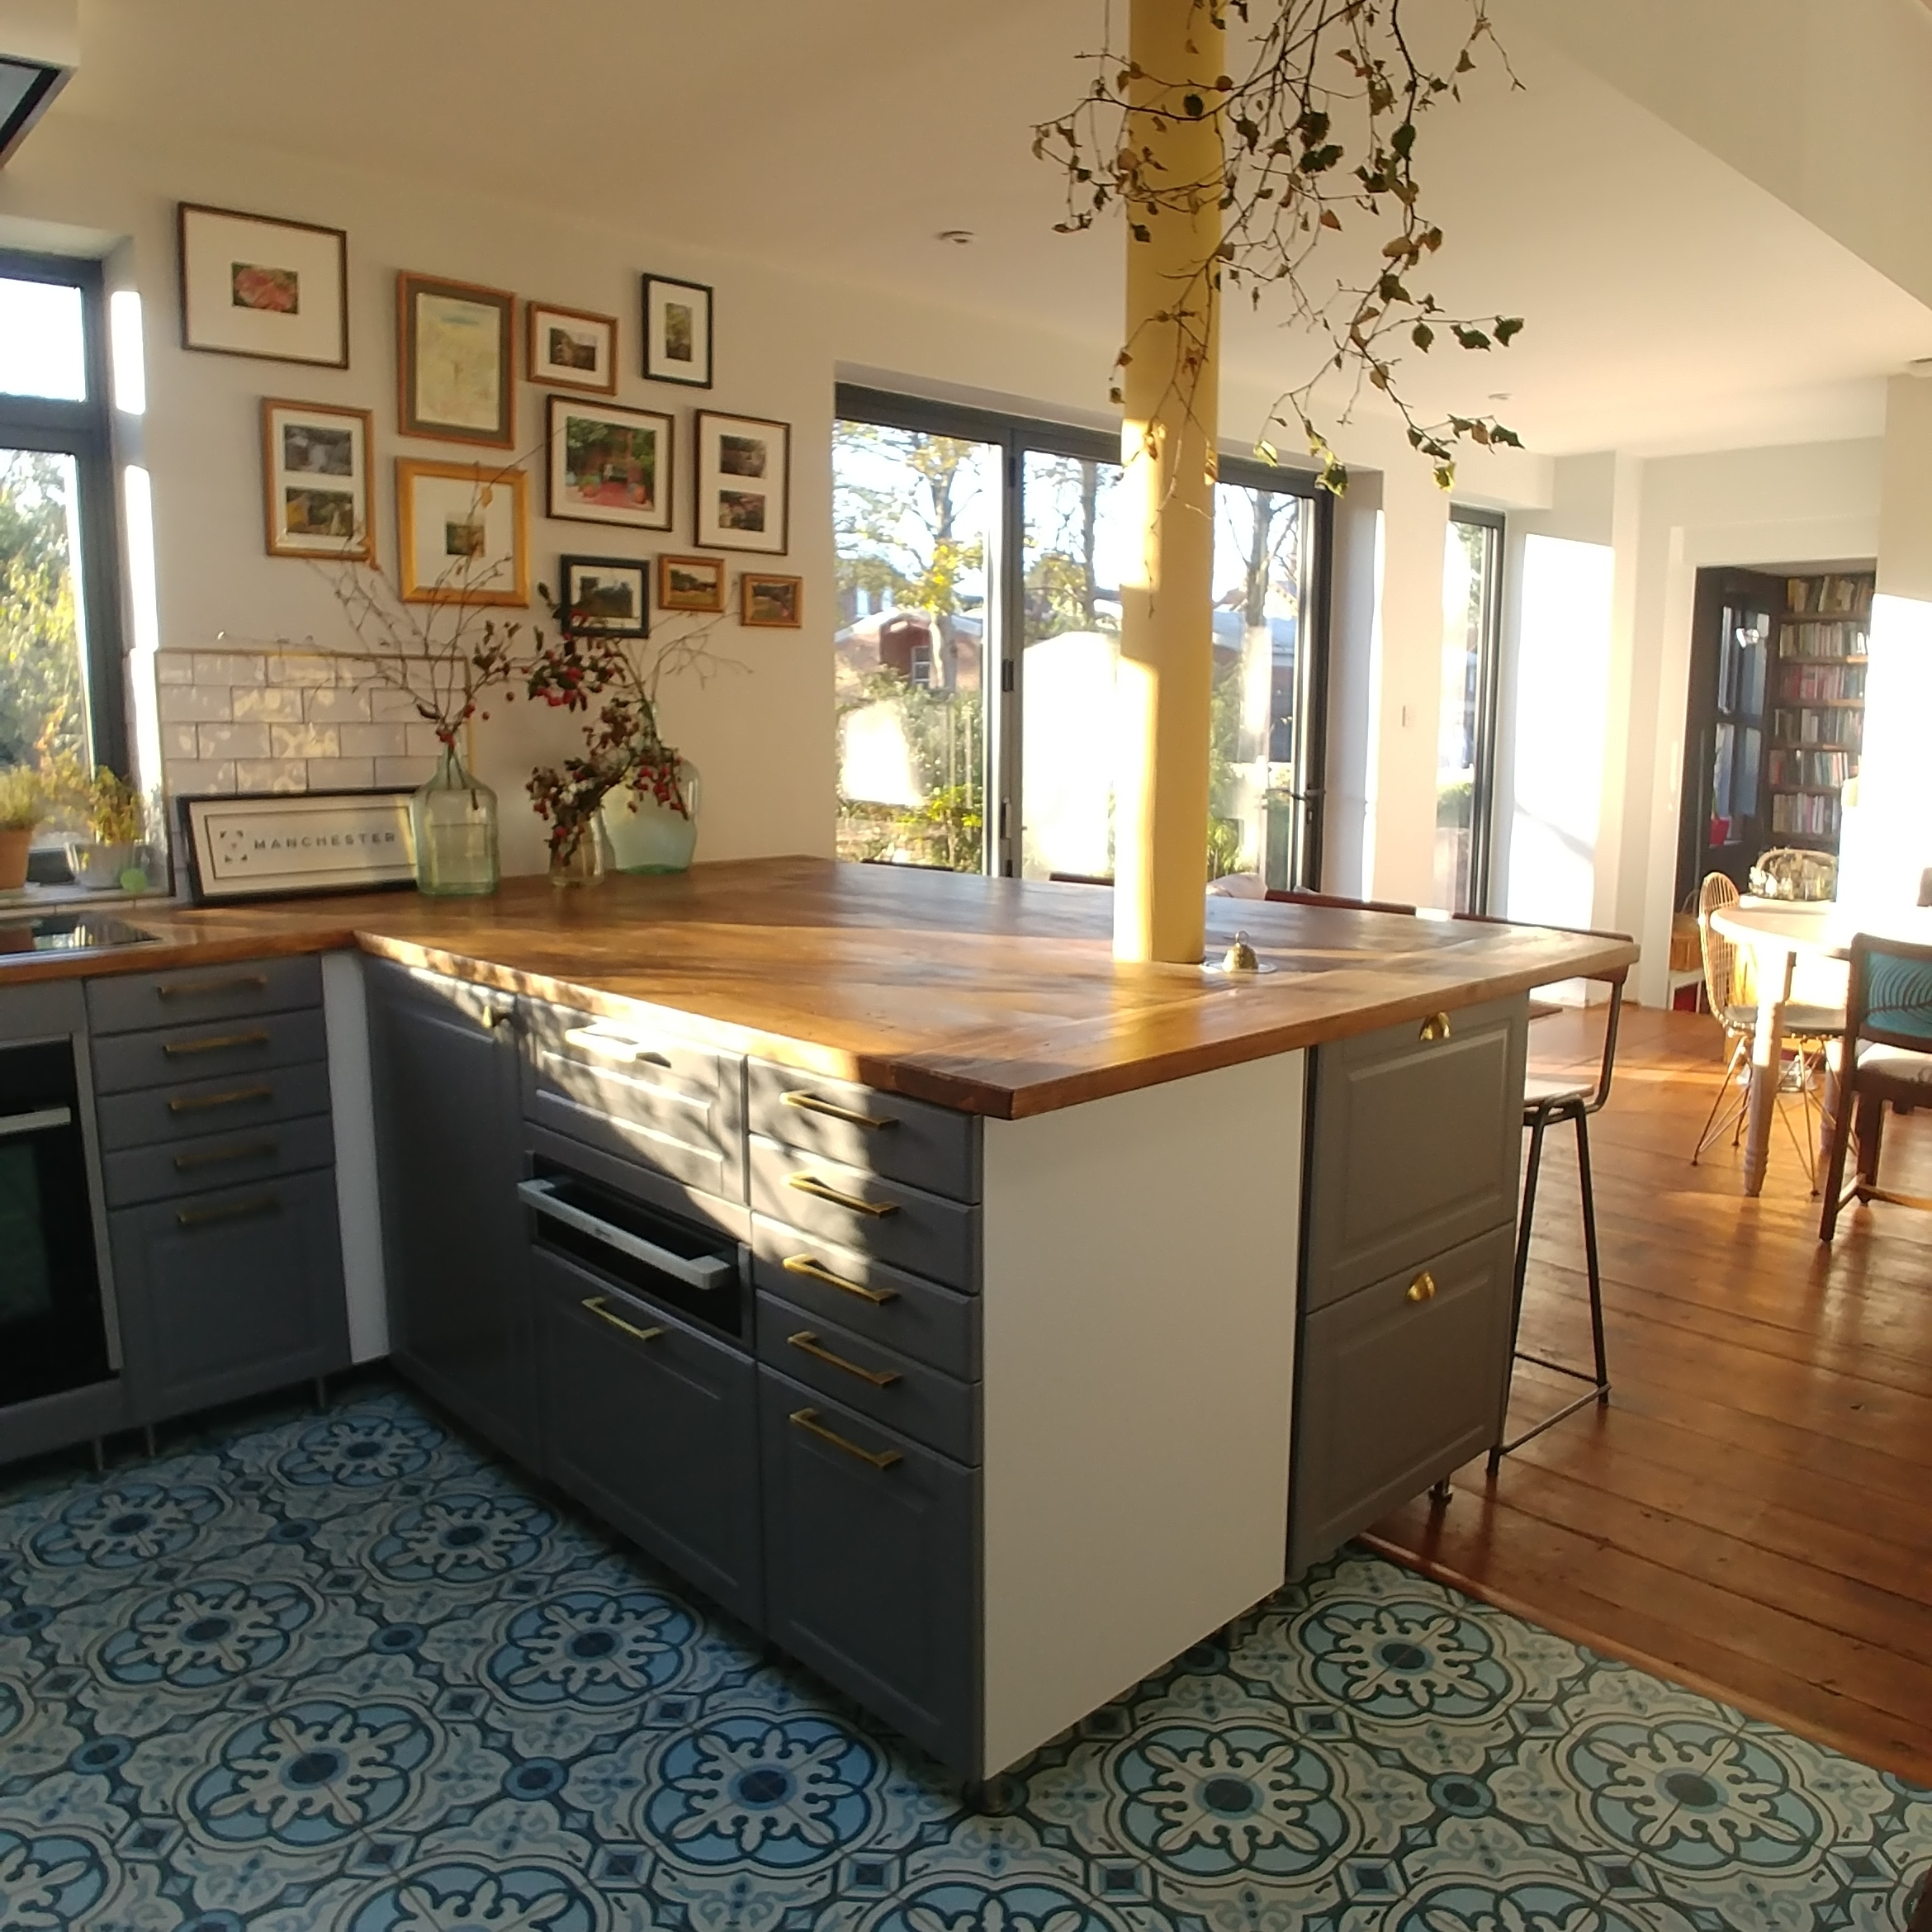 STN-Kitchen-Gallery-Wall-Tiles